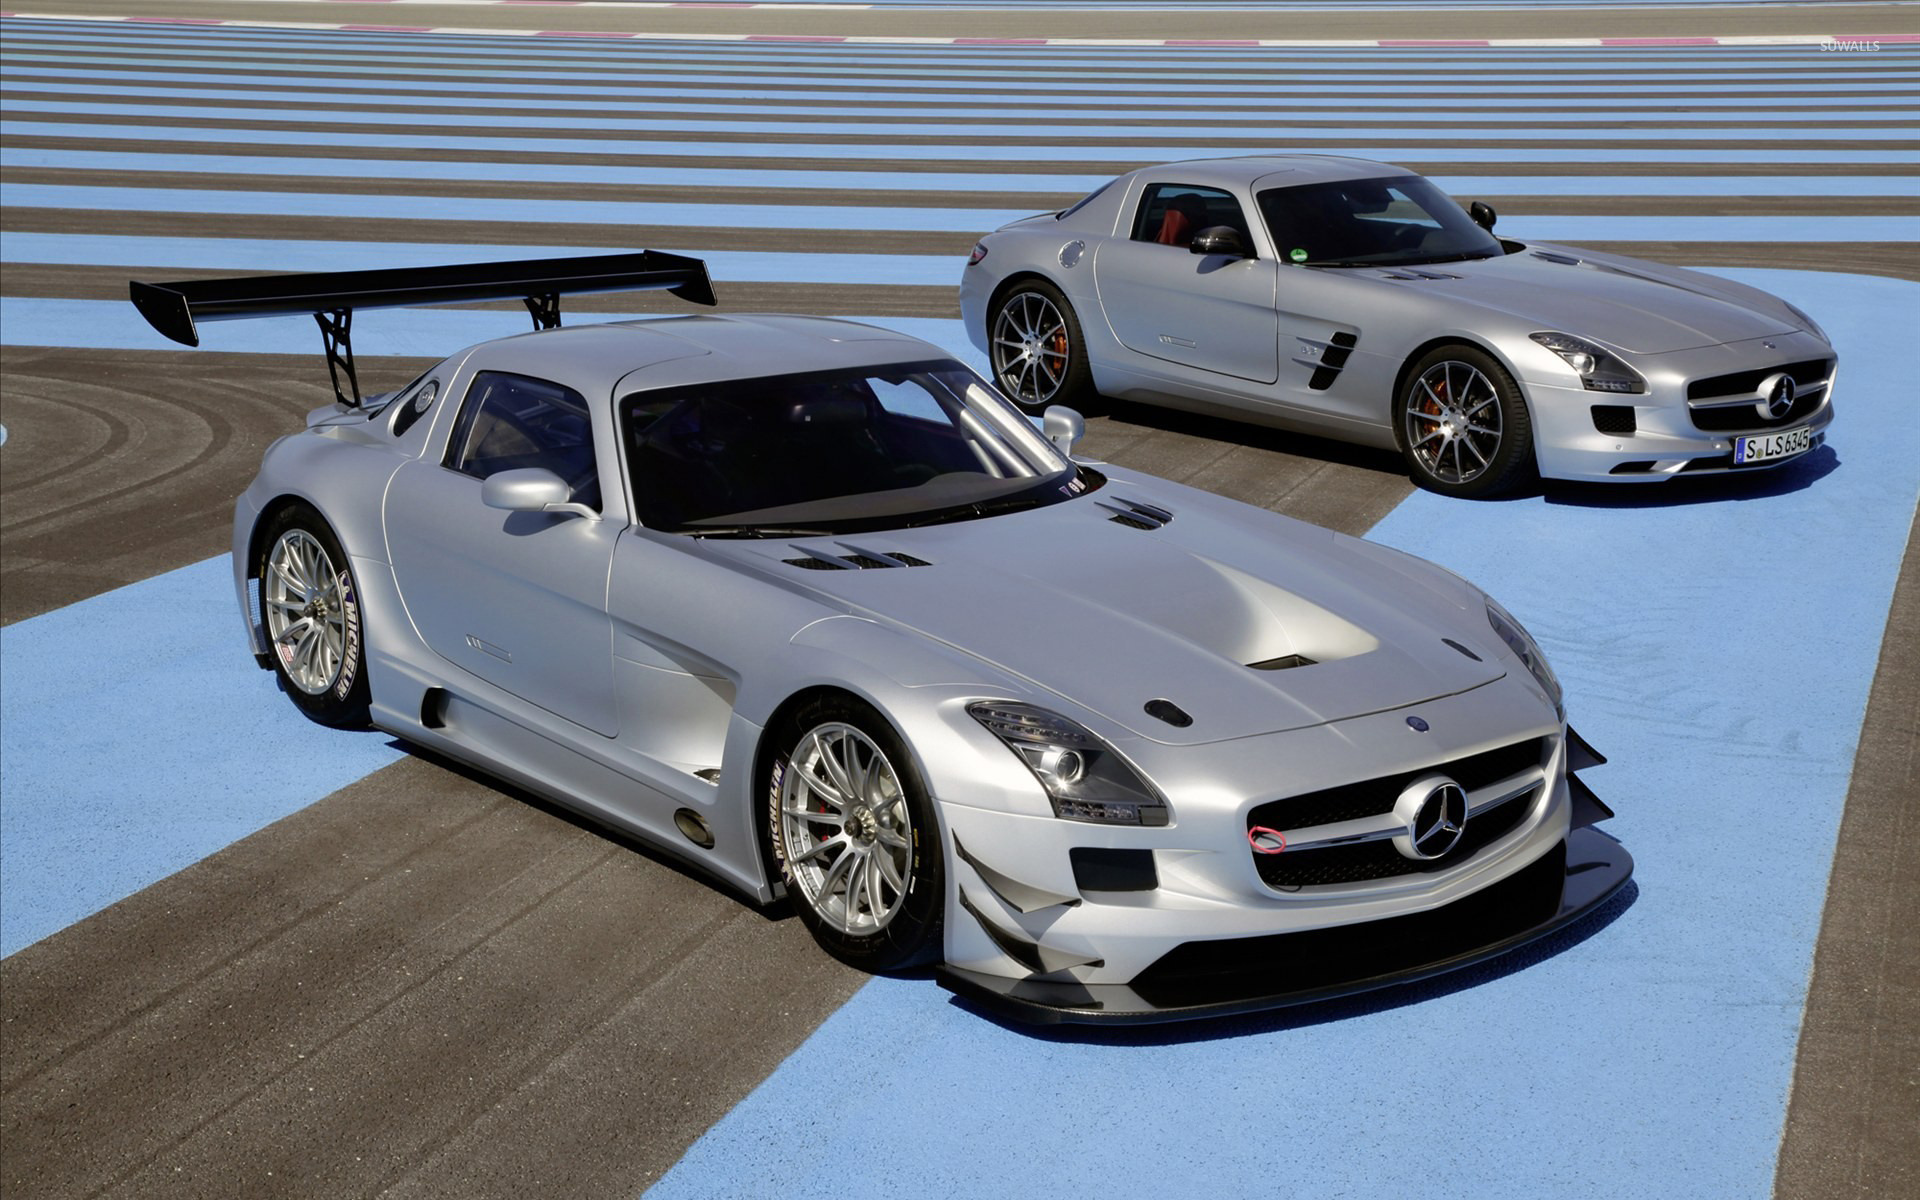 Mercedes benz sls amg gt3 wallpaper car wallpapers 12258 for Mercedes benz gt3